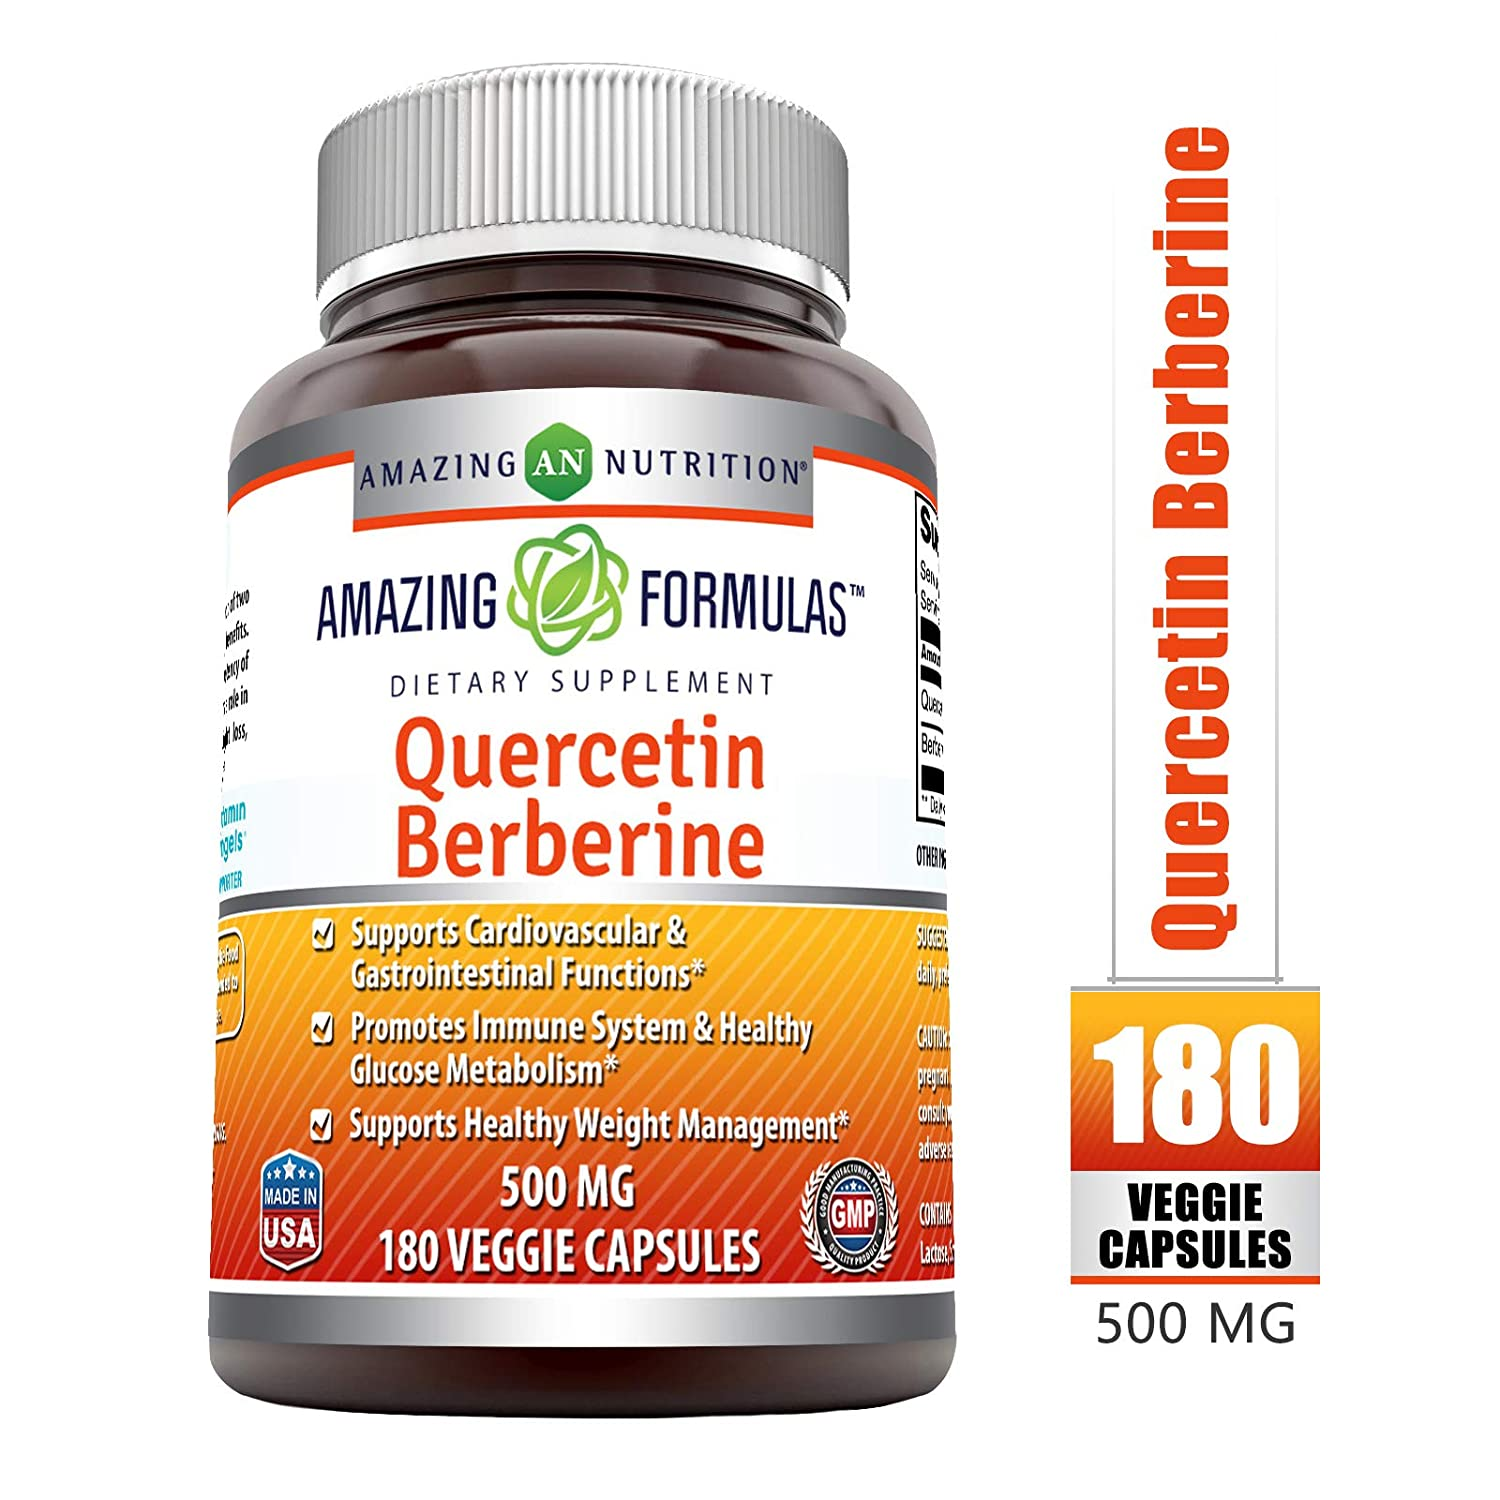 Amazing Formulas Quercetin Berberine – 250 mg of Berberine and 250 mg Quercetin in Each Veggie Capsule. Non-GMO Potent Anti-oxidant Properties. Supports Heart Health, Energy Production* 180 Count